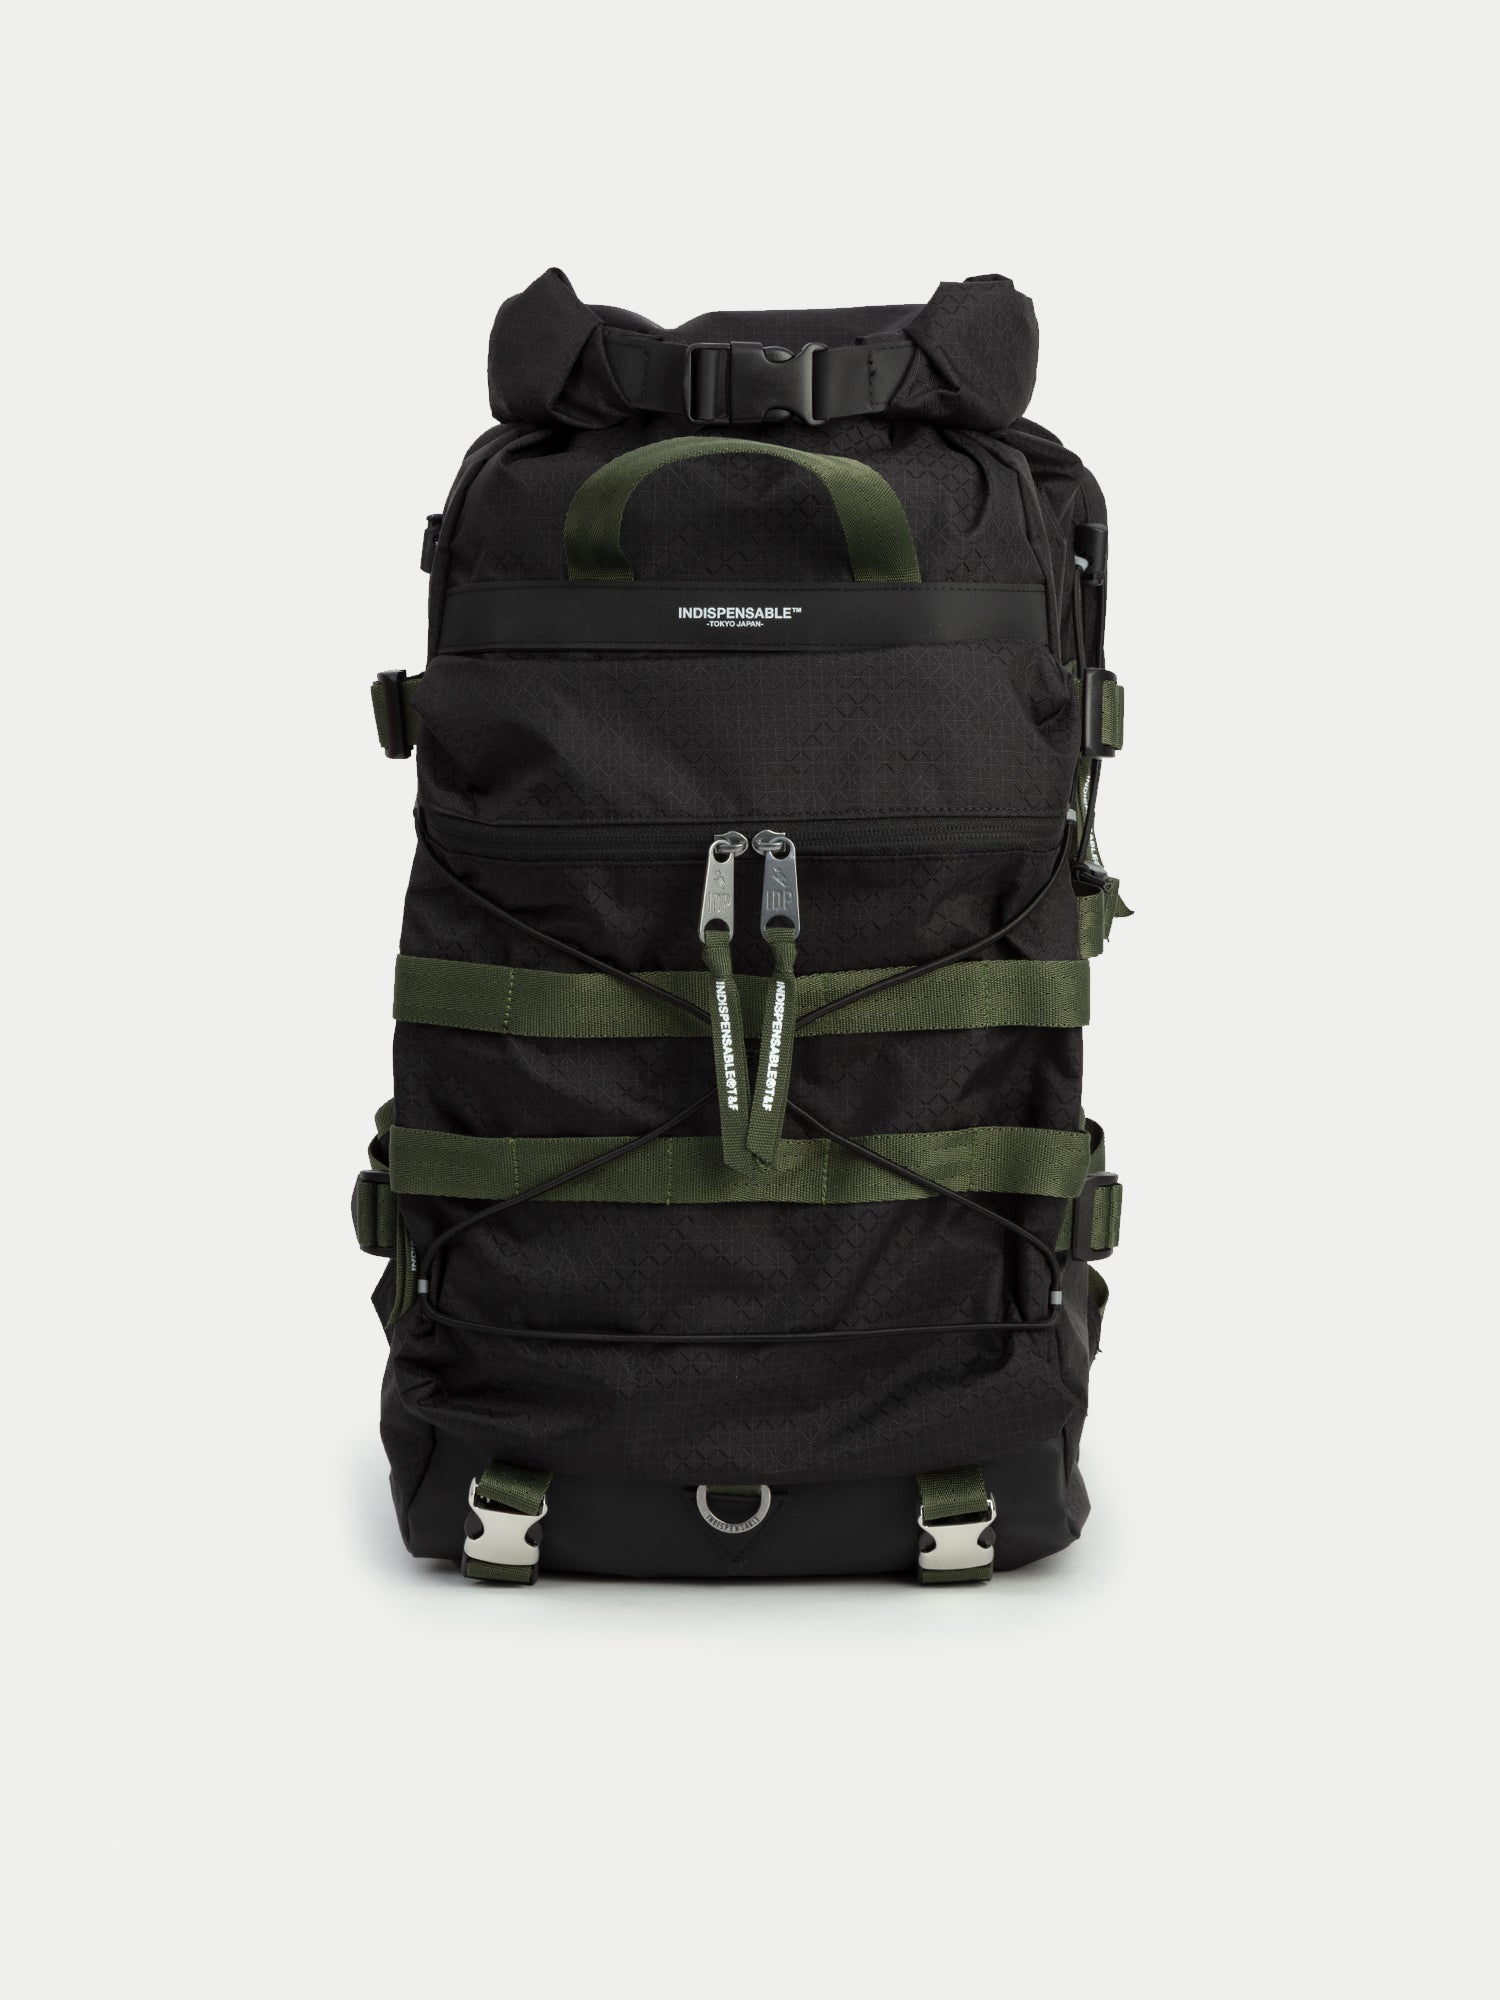 Indispensable Bags Radd Gridstop Backpack (Black) 1